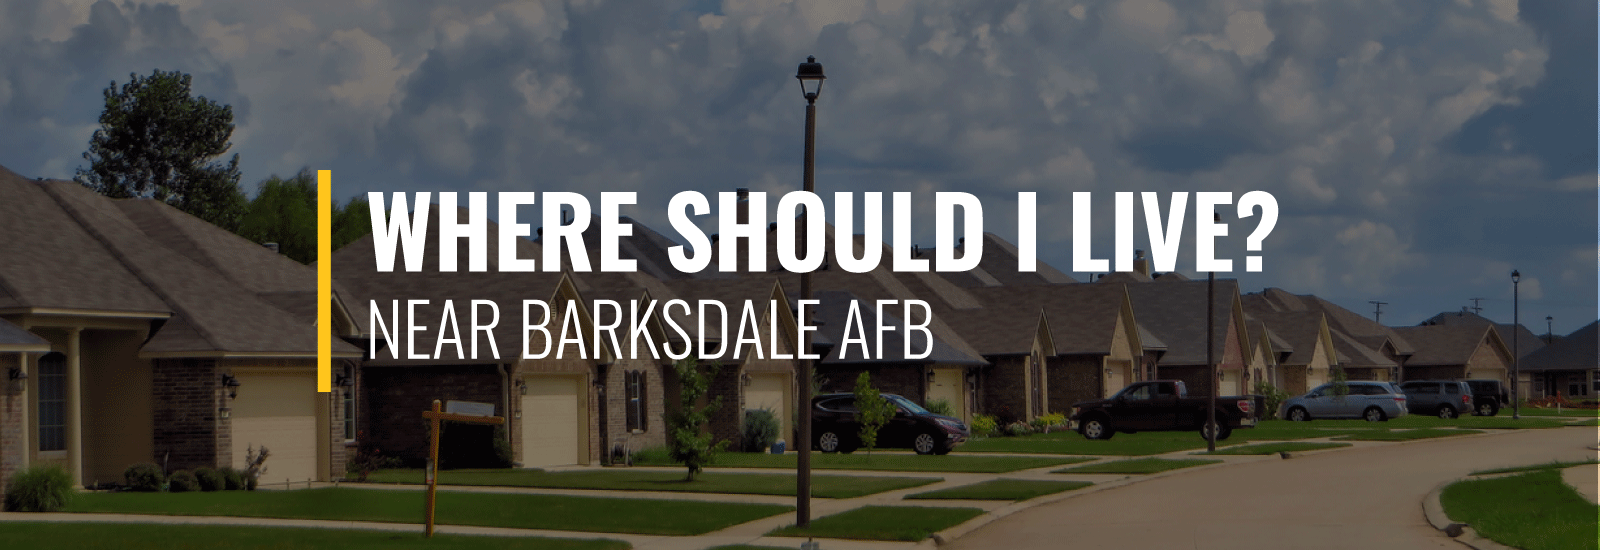 Where Should I Live Near Barksdale AFB?